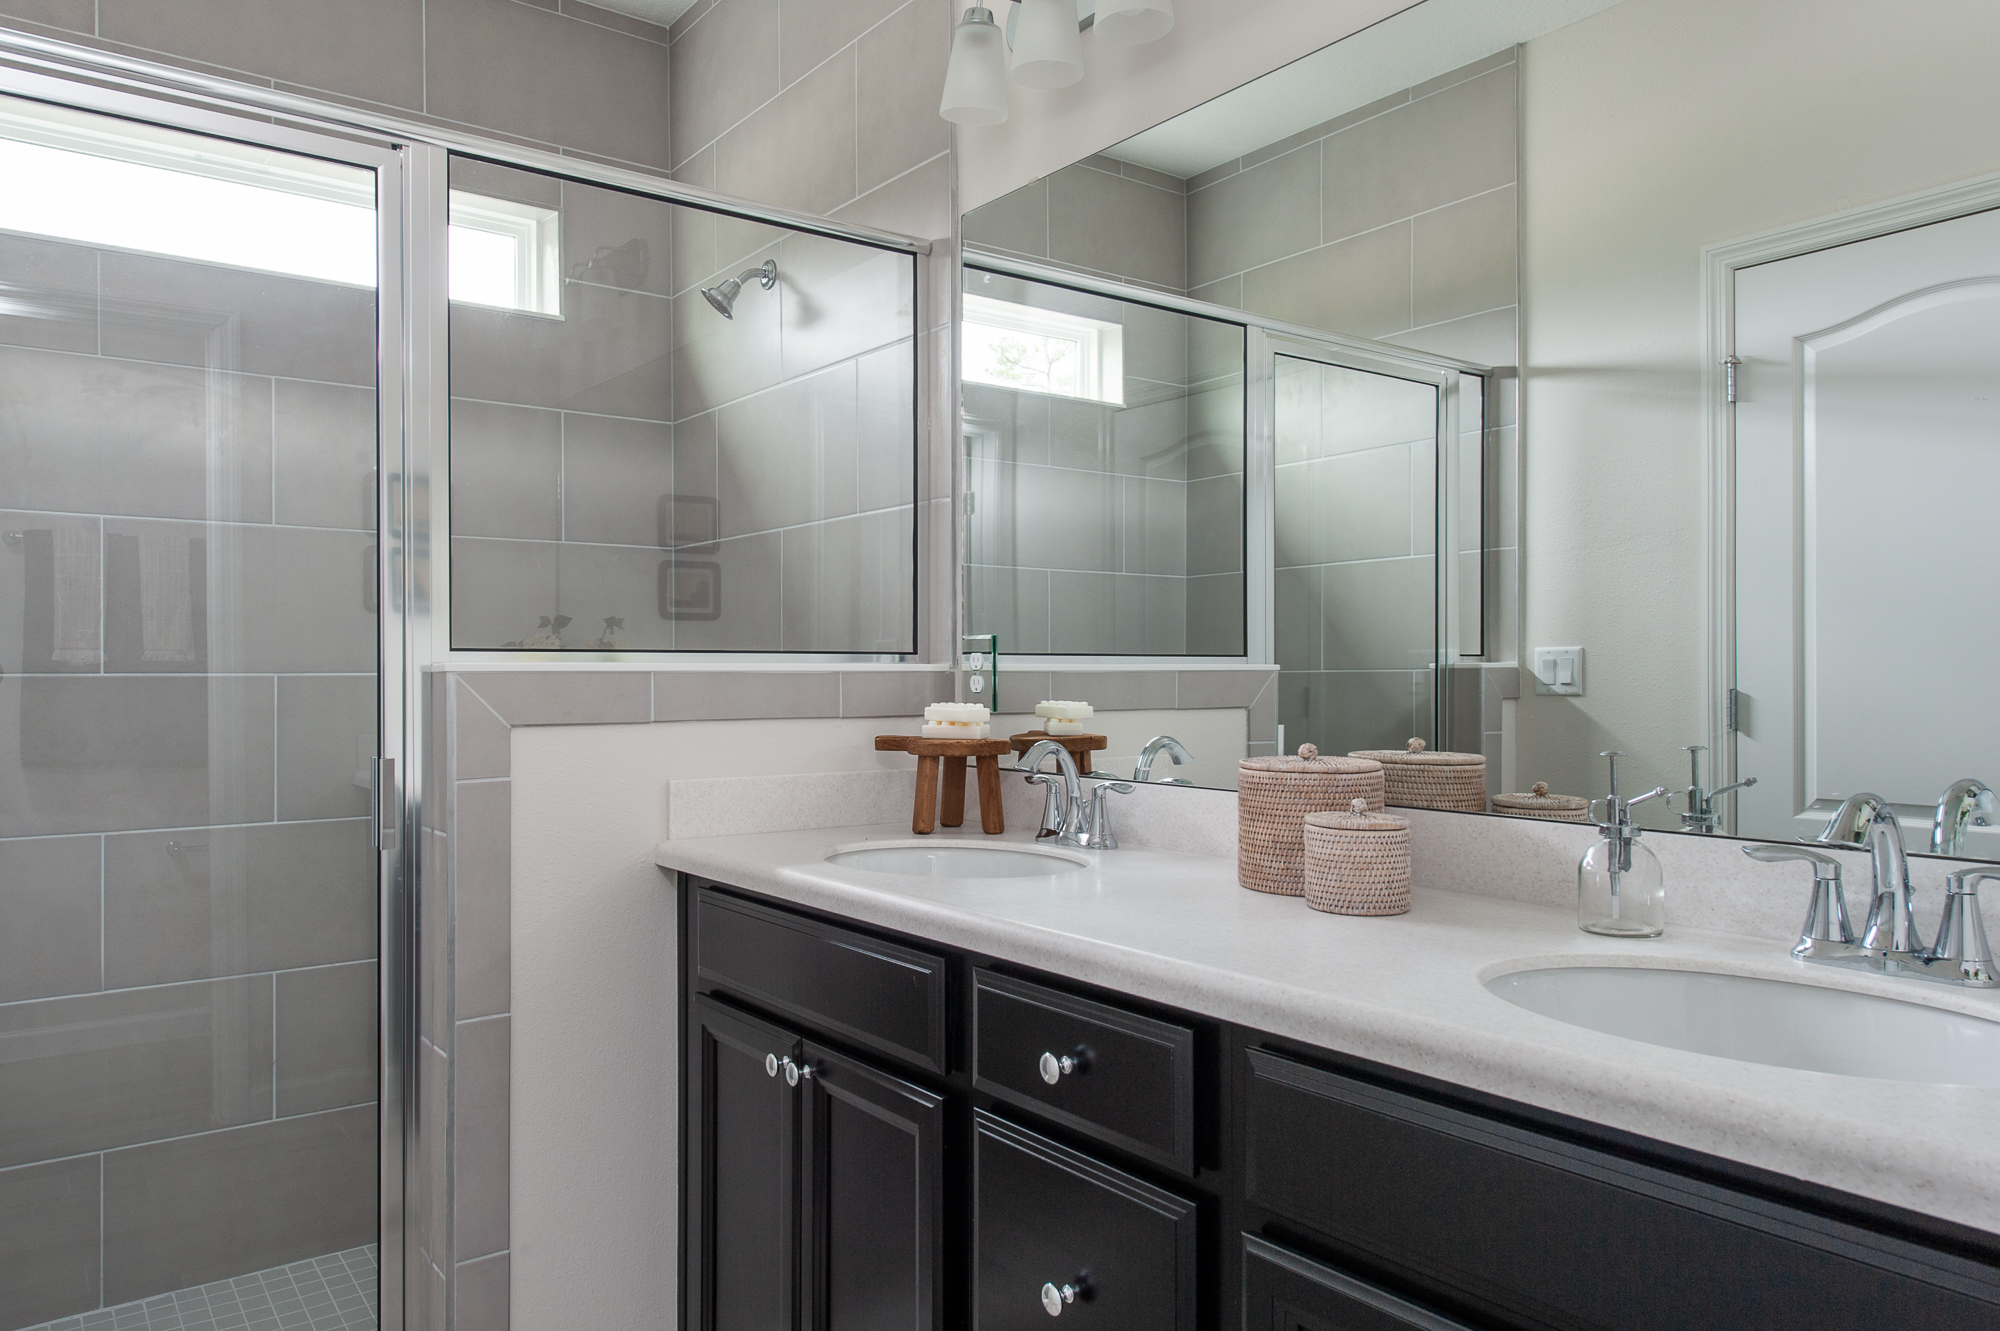 Micamy Design Studio_Model Home_Interior Design_Orchard Cove_Modern Coastal_McGee & Co_Owners Bath_Walk in Shower_Dark Cabinets.jpg